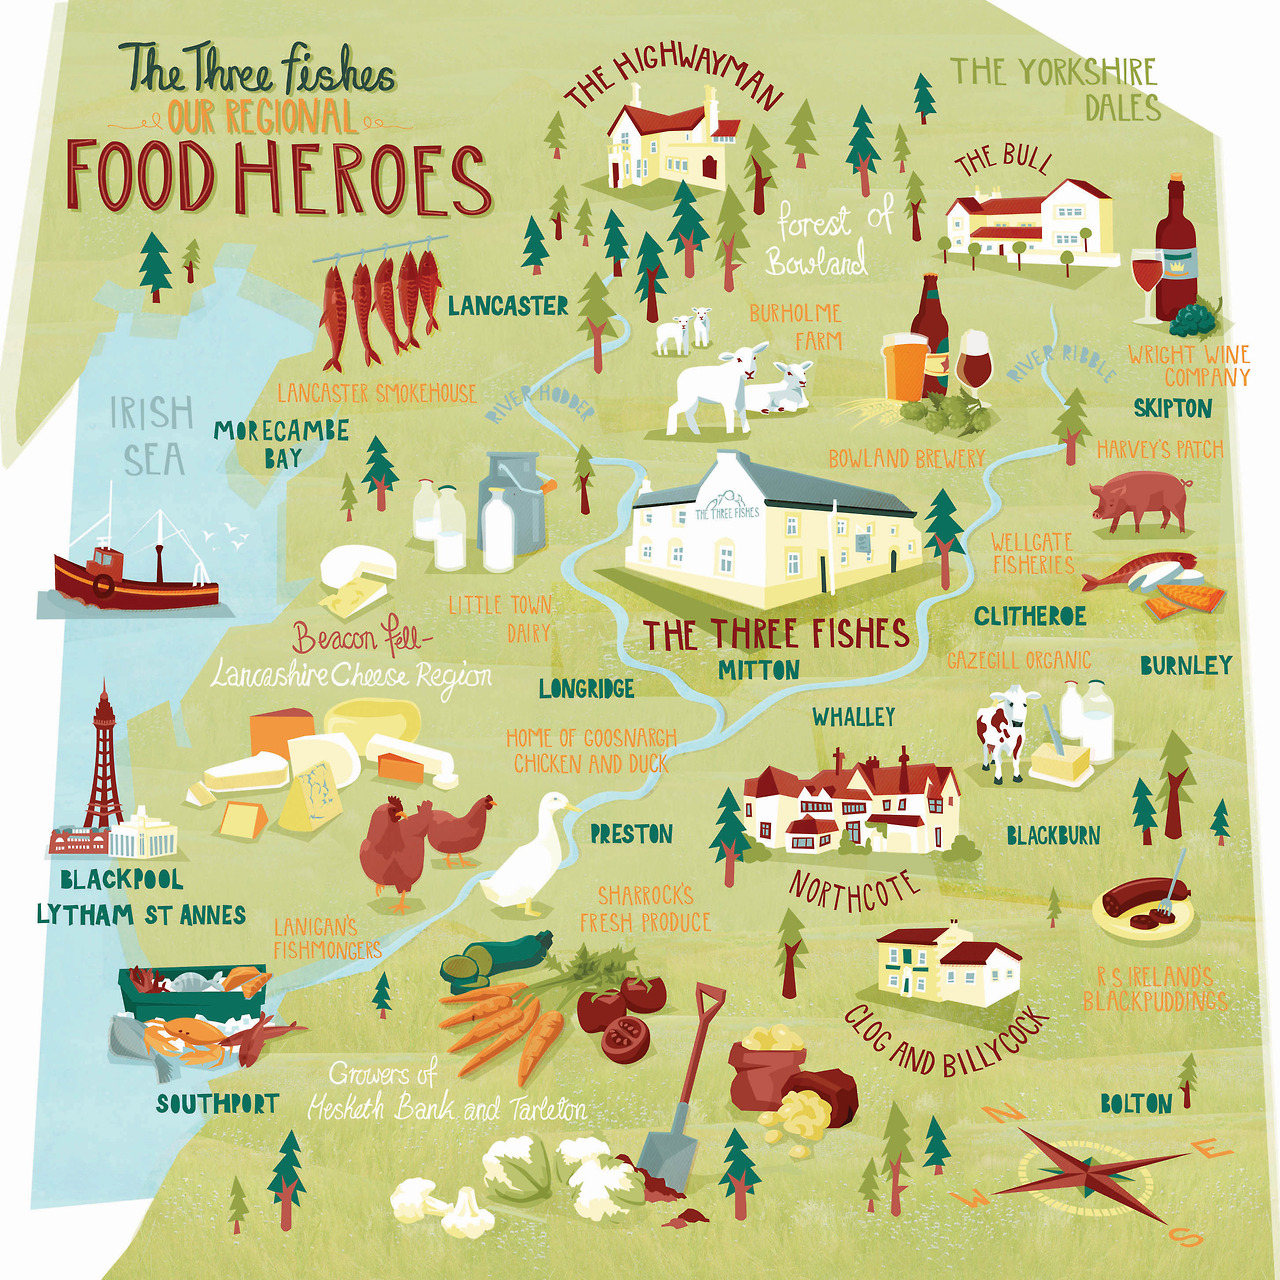 I was asked to do a series of supplier maps for the Three Fishes Pub in Lancashire. I did one Large map of the local produce that the restaurant uses as well as a Cheese map and a walking trail. You can find out more about my Three Fishes project HERE